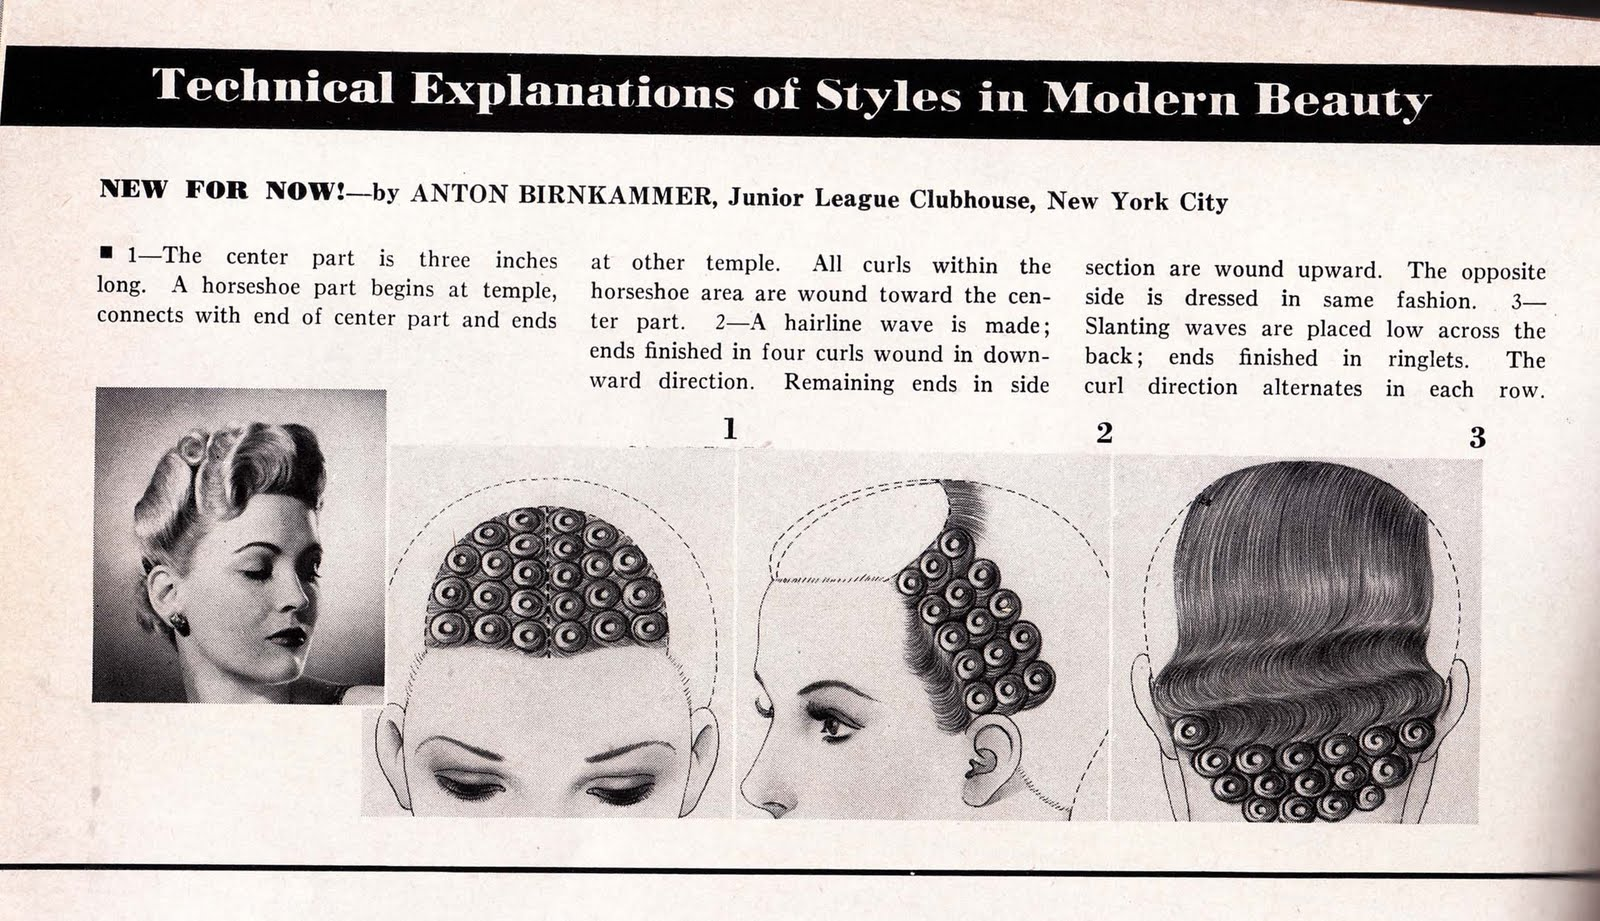 the importance of being vintage pomps curls and waves intricate rh importanceofbeingvintage blogspot com pin curl diagram for long hair Marilyn Monroe Pin Curls